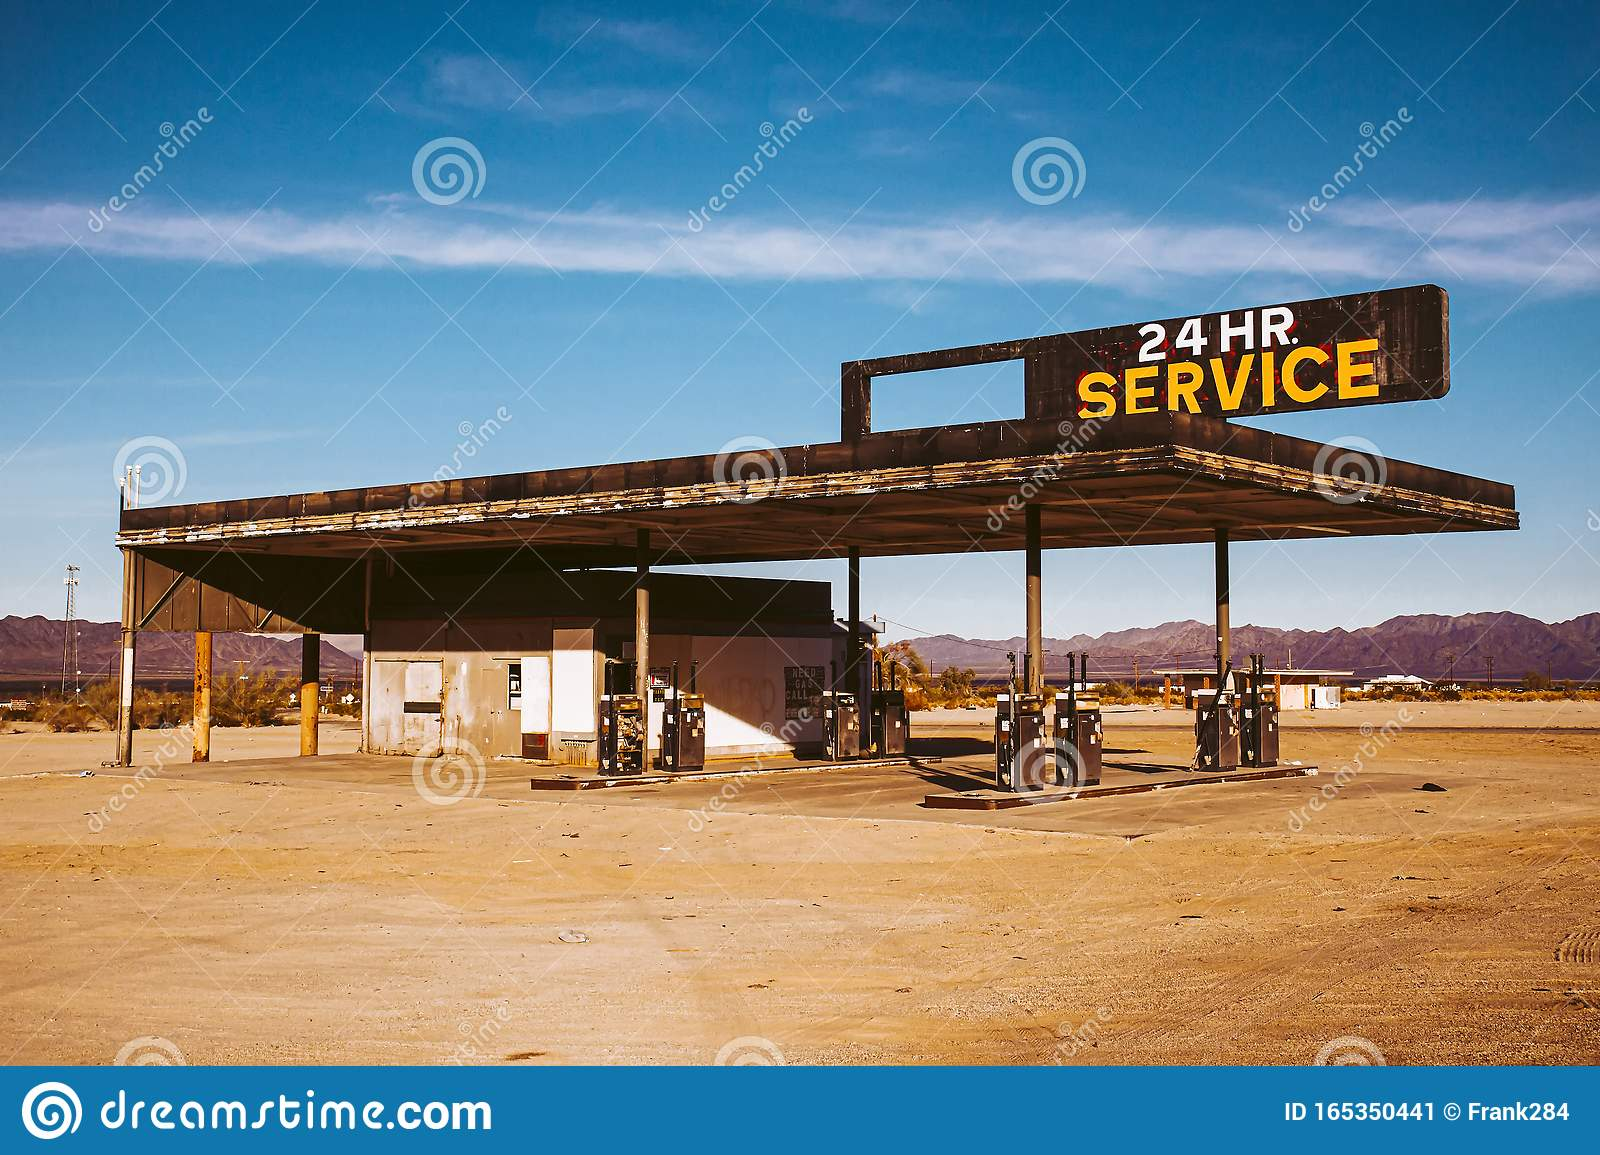 Abandoned Gas Station With Sign Reading 24 Hour Service Stock Image Image Of Hope Hopeless 165350441